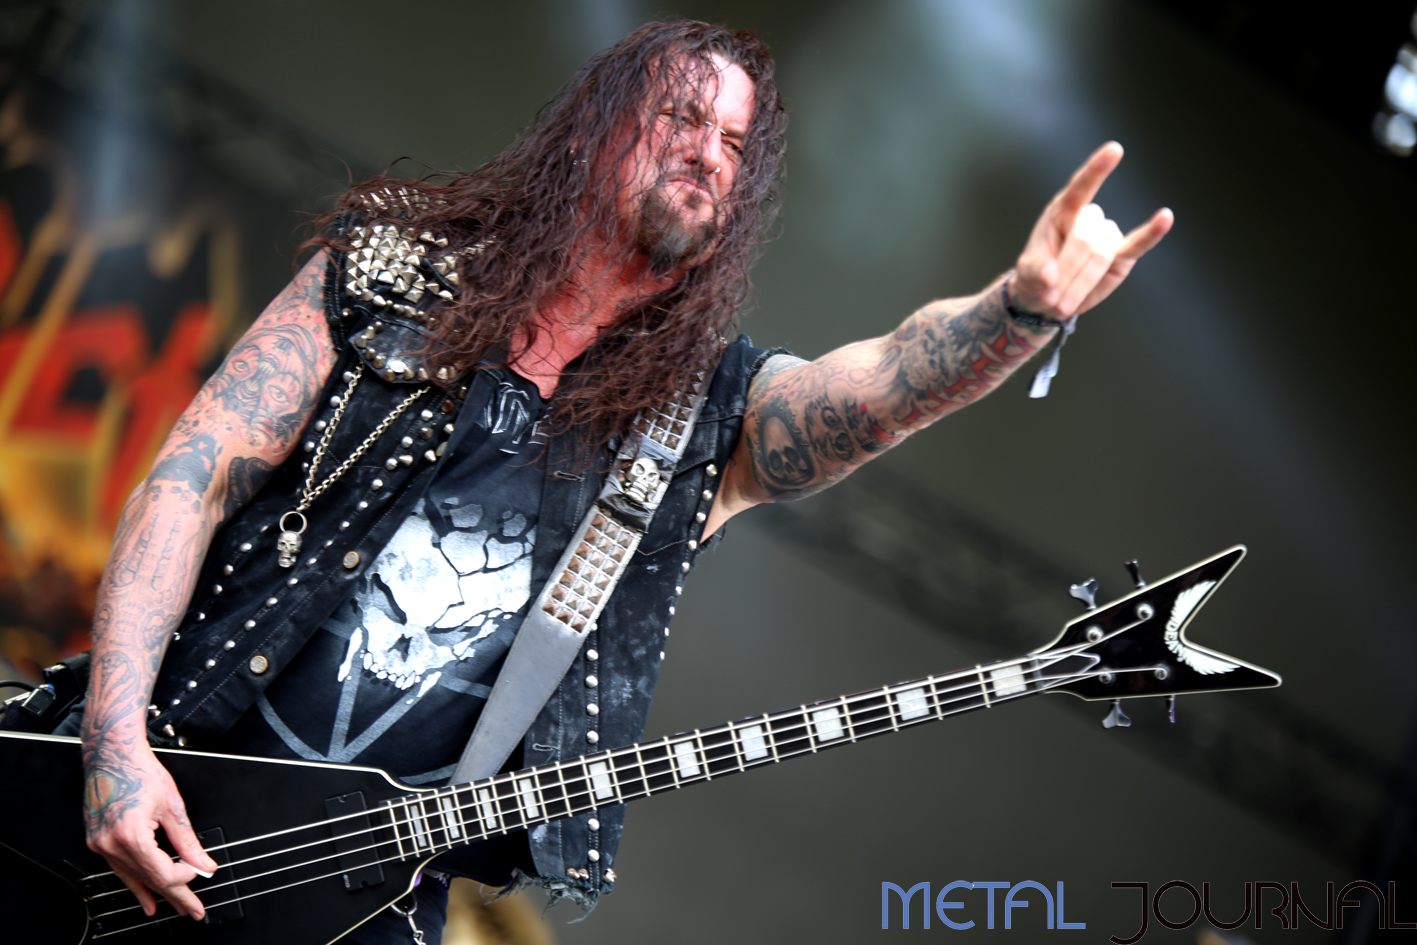 destruction rock fest 18 - metal journal pic 1